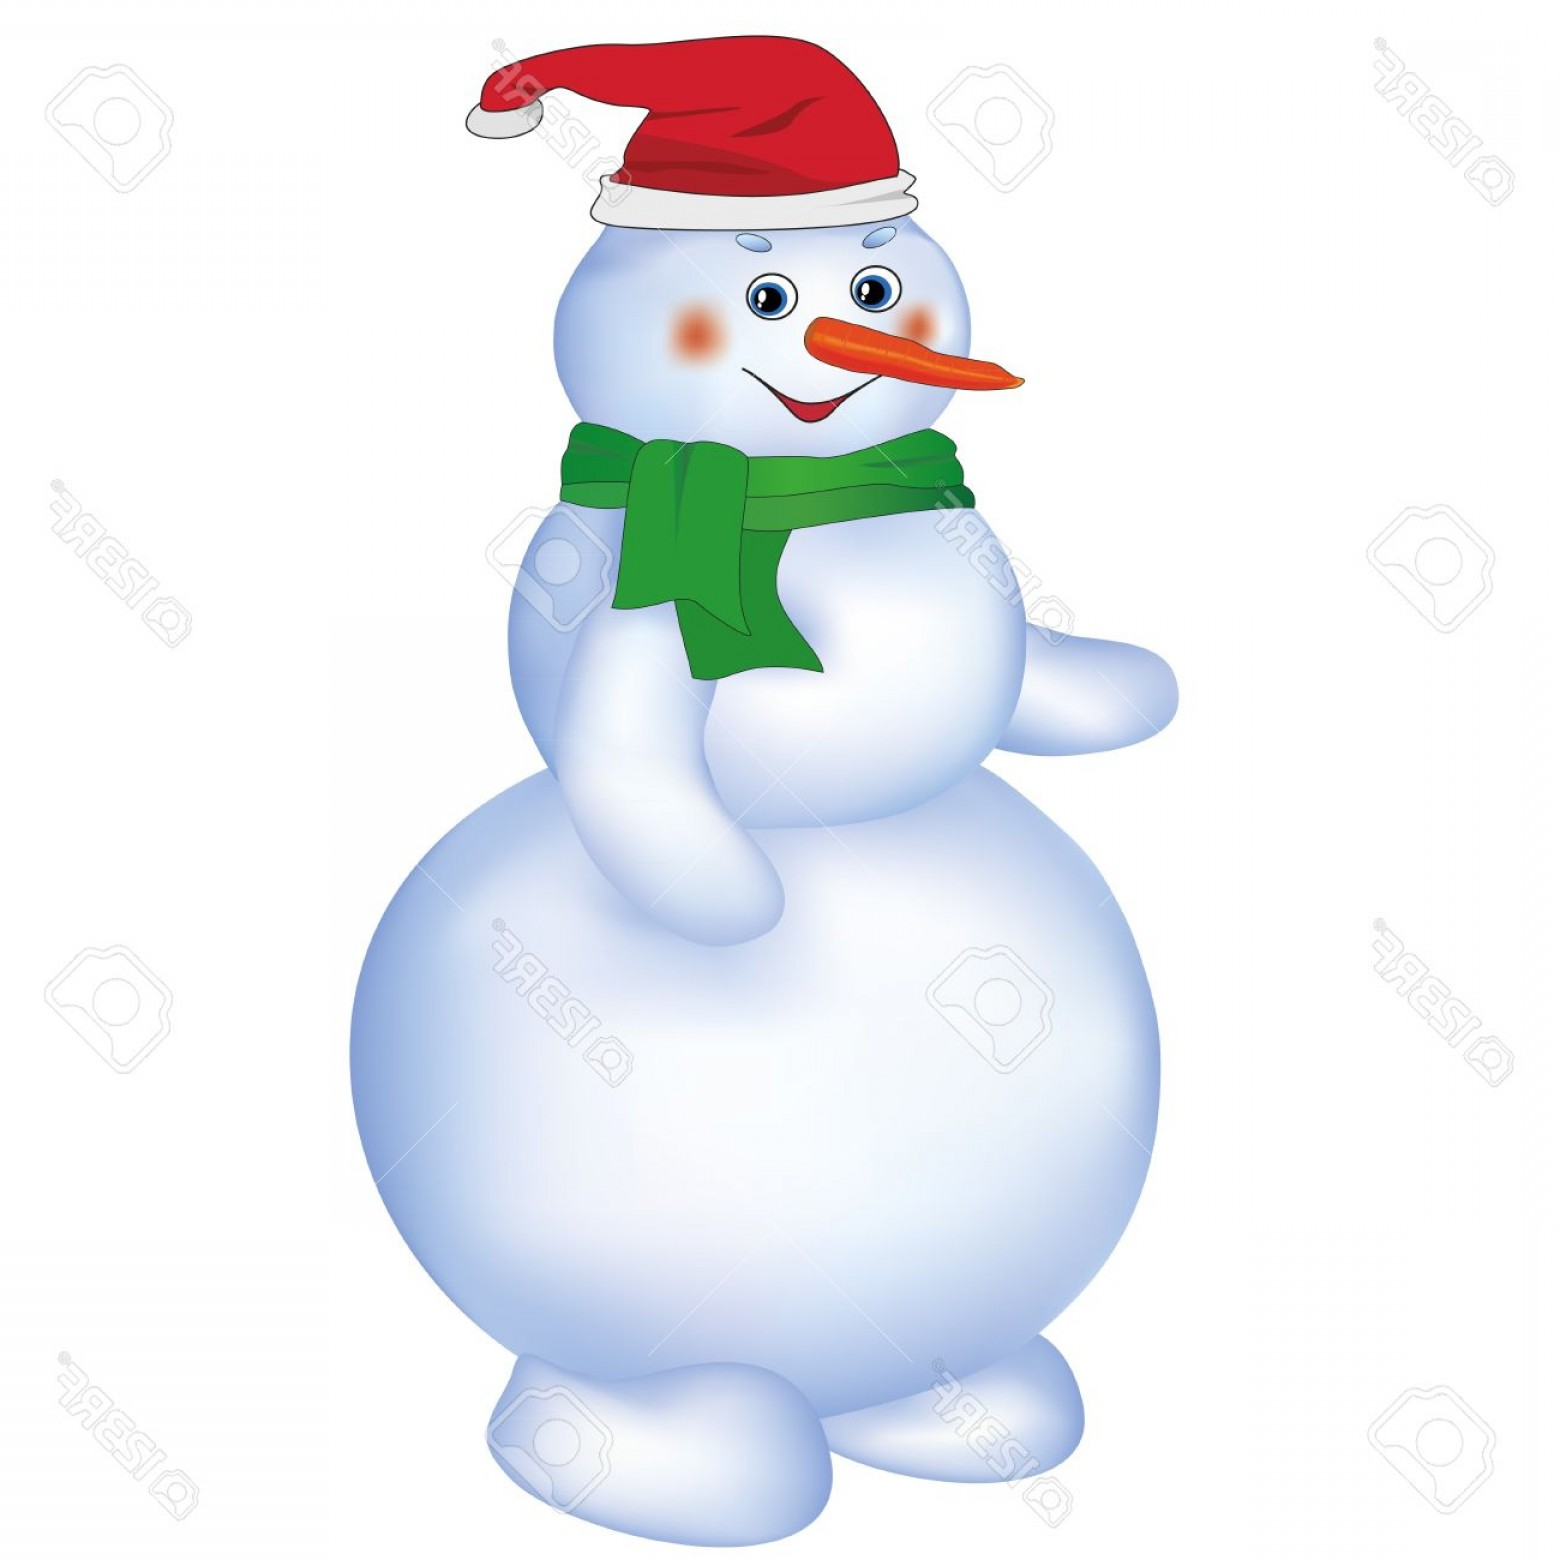 No Hat With Snowman Vector: Photosmiling Cute Christmas Snowman Wearing Santa Hat And Green Scarf Isolated On White Background